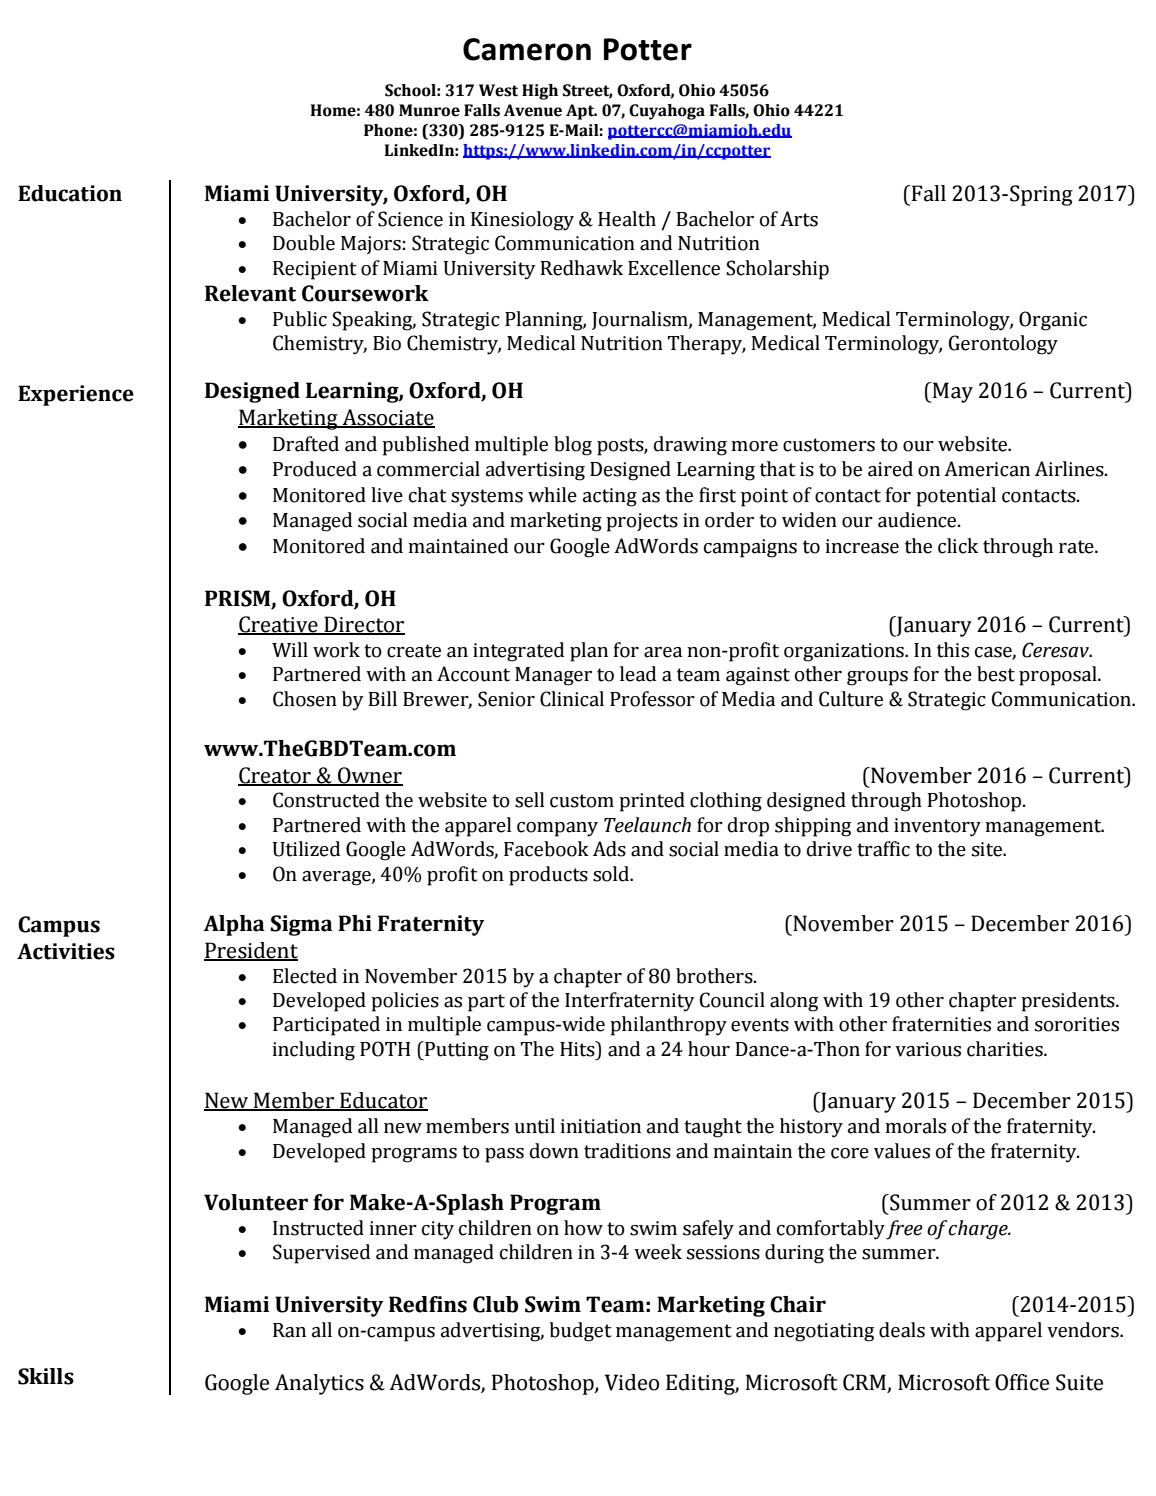 Cameron potter resume by Cameron Potter - issuu